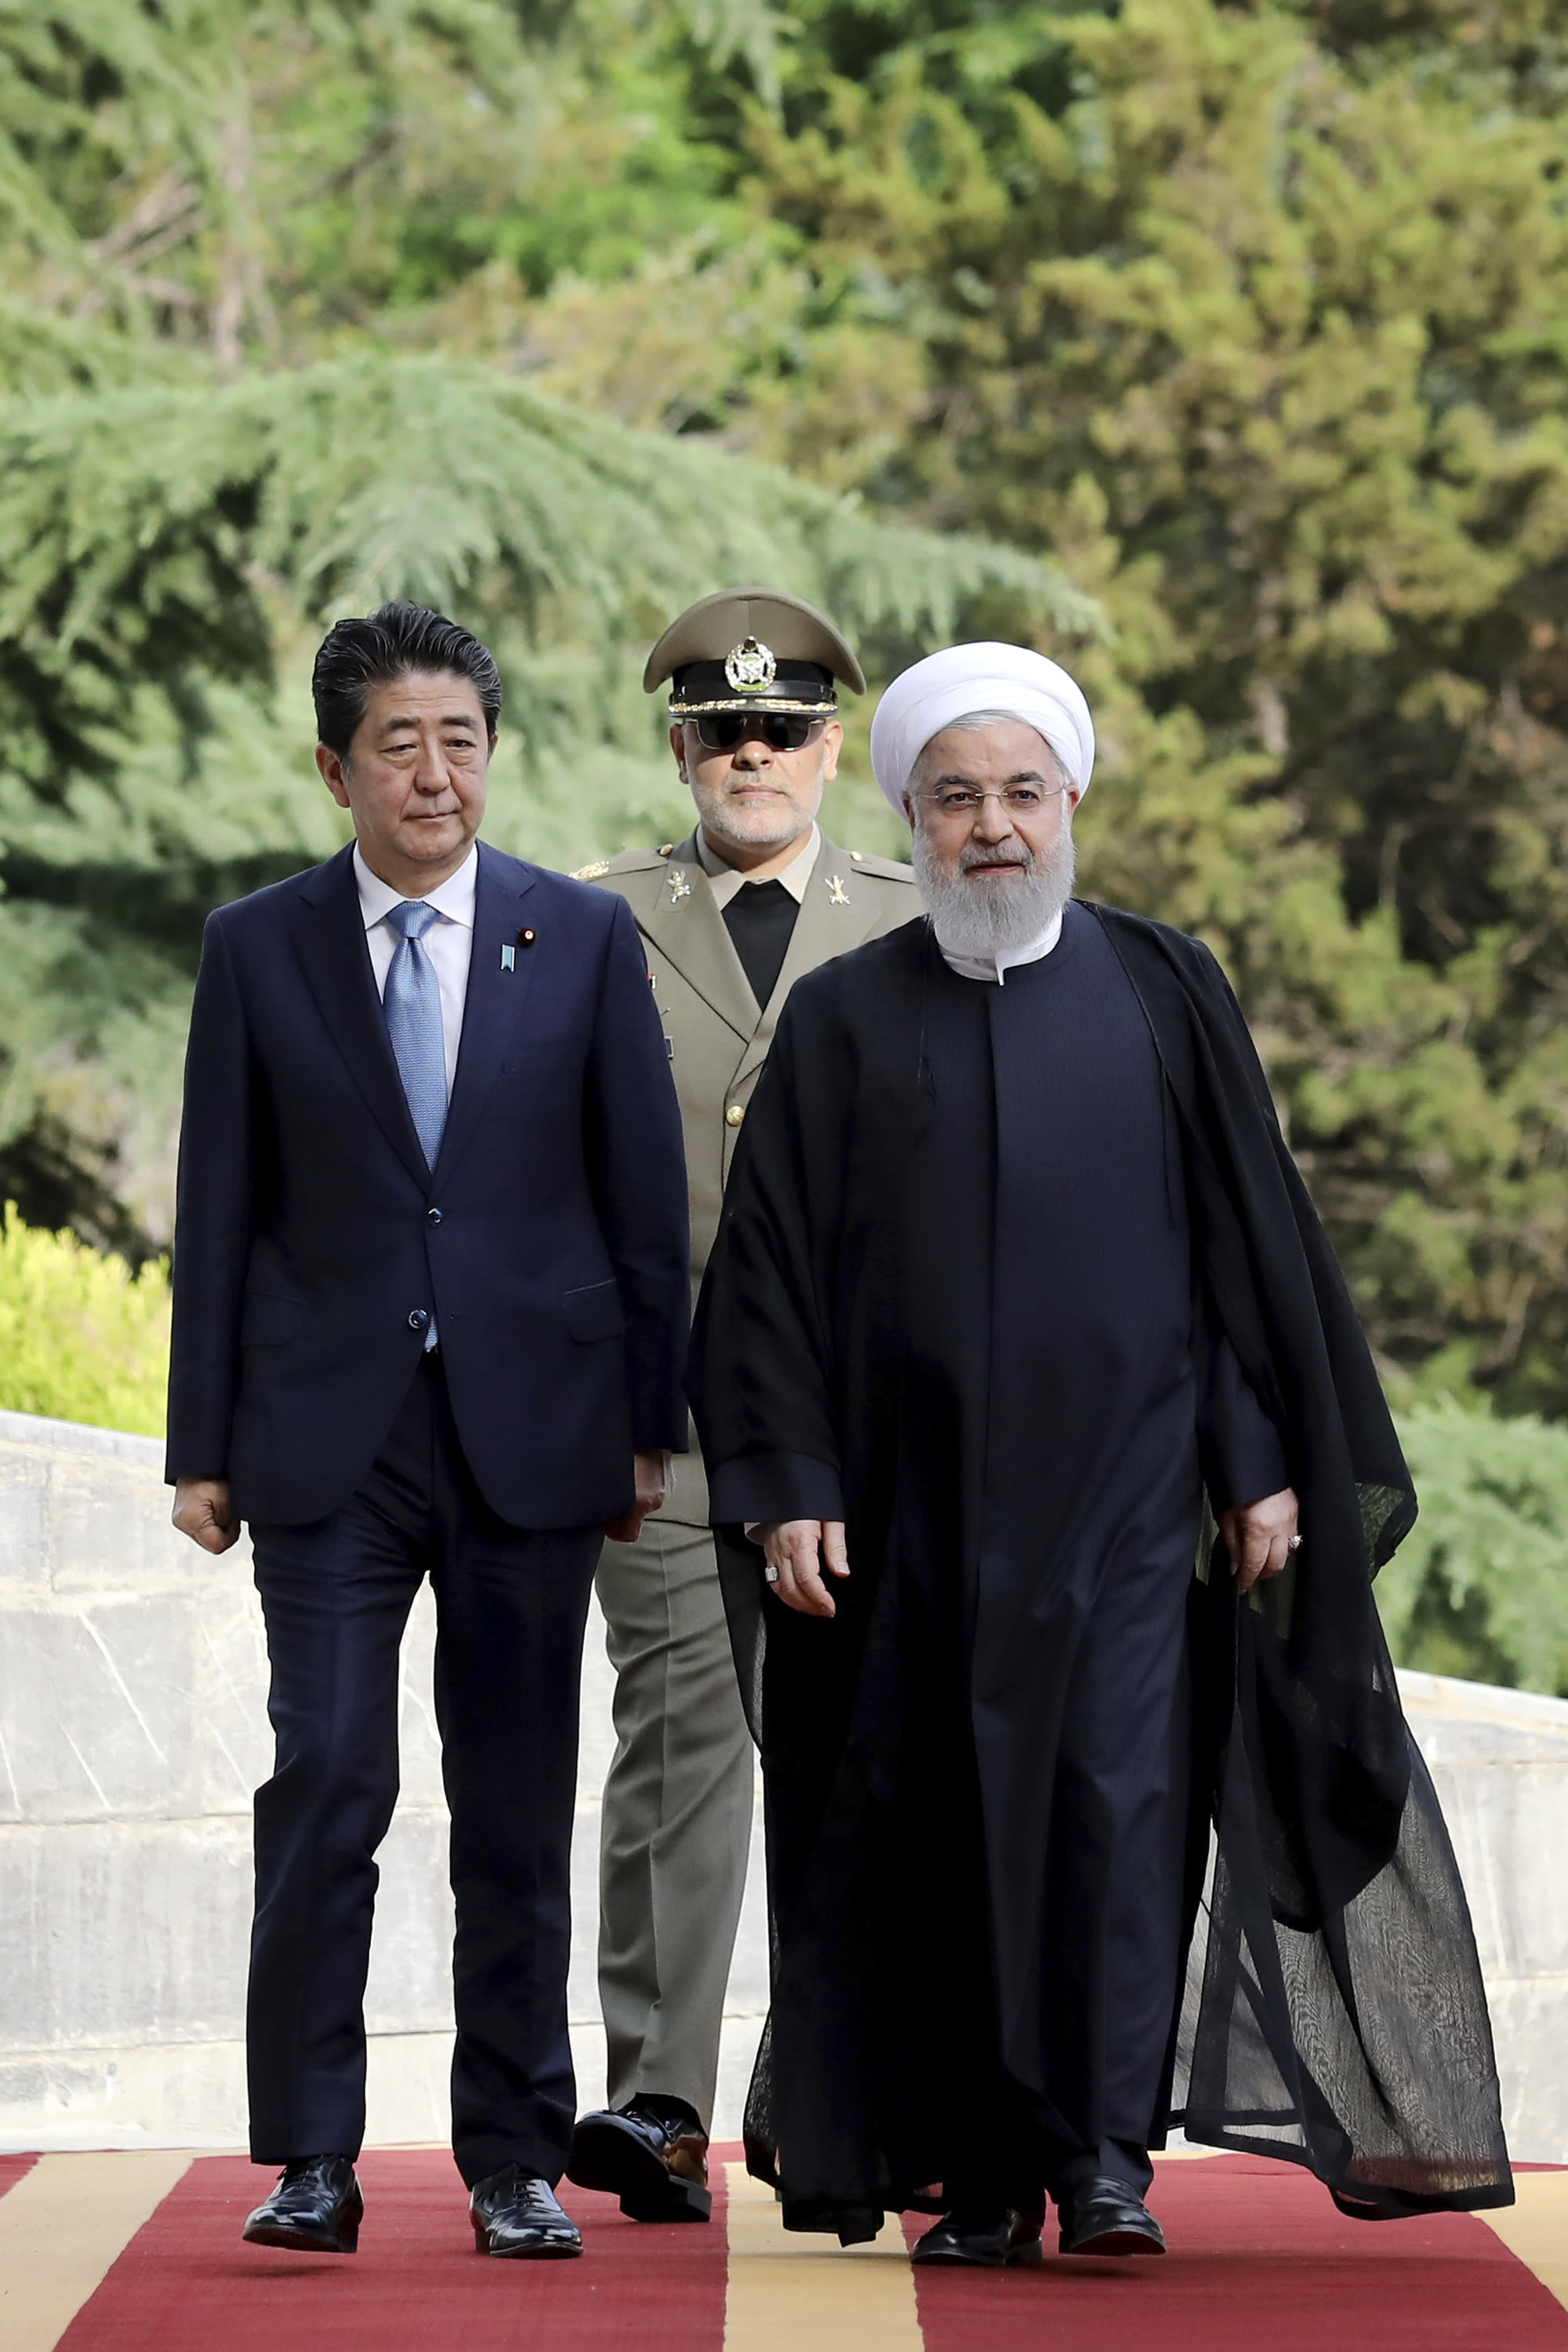 Japanese Prime Minister Shinzo Abe, left, is welcomed by Iranian President Hassan Rouhani, right, during an official arrival ceremony at the Saadabad Palace in Tehran, Iran, Wednesday, June 12, 2019. The Japanese leader is in Tehran on an mission to calm tensions between the U.S. and Iran. (AP Photo/Ebrahim Noroozi)